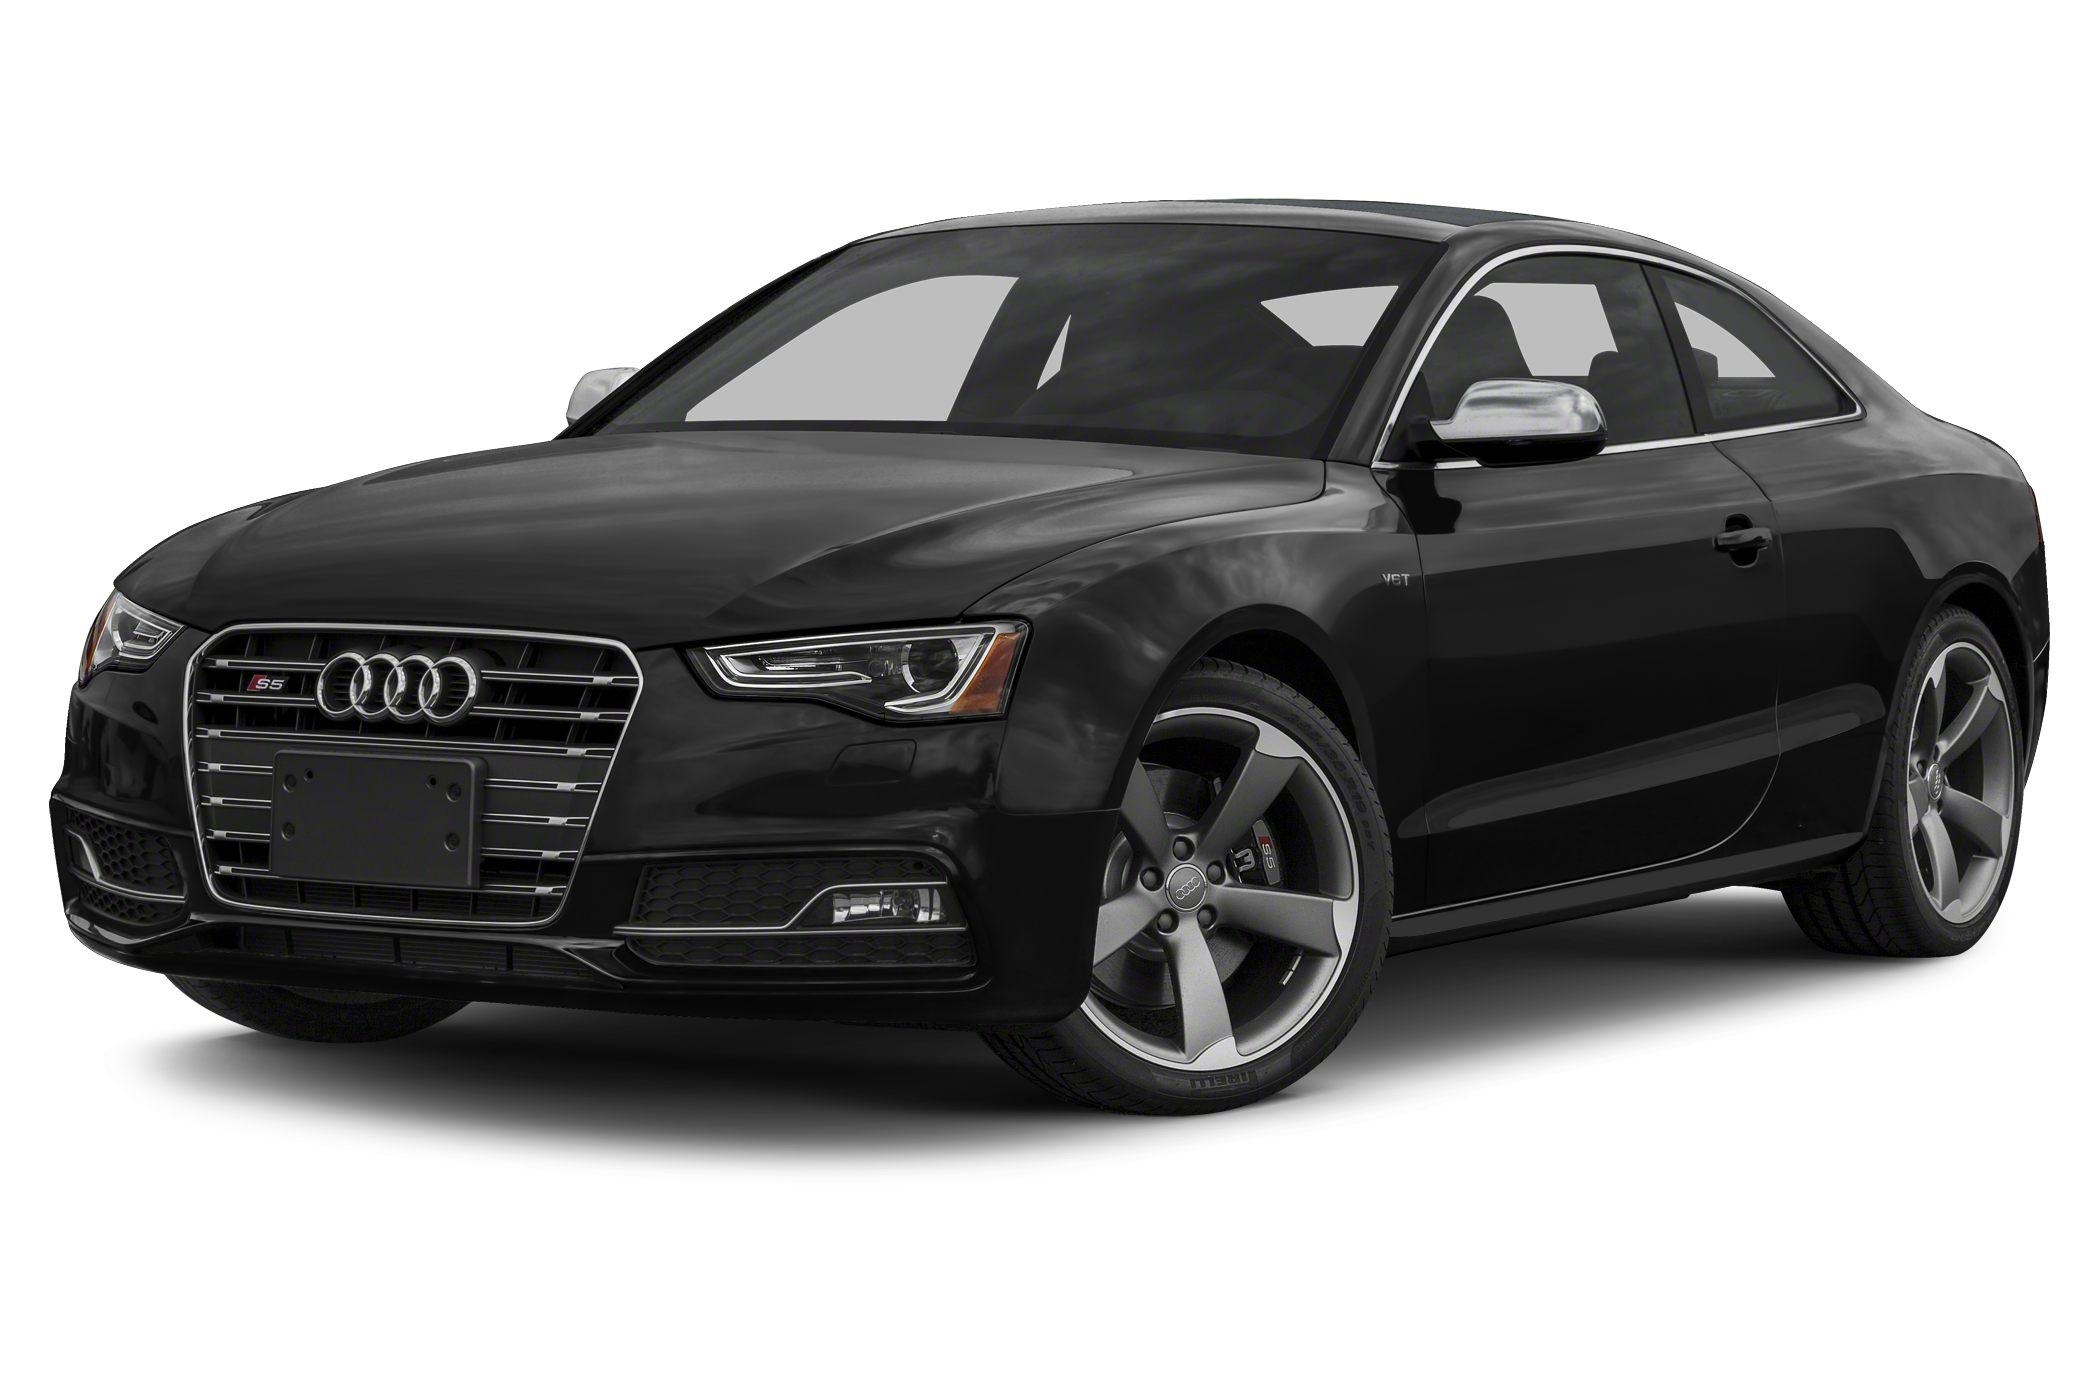 2014 Audi S5 3.0T Premium Plus Coupe for sale in Sanford for $49,987 with 19,552 miles